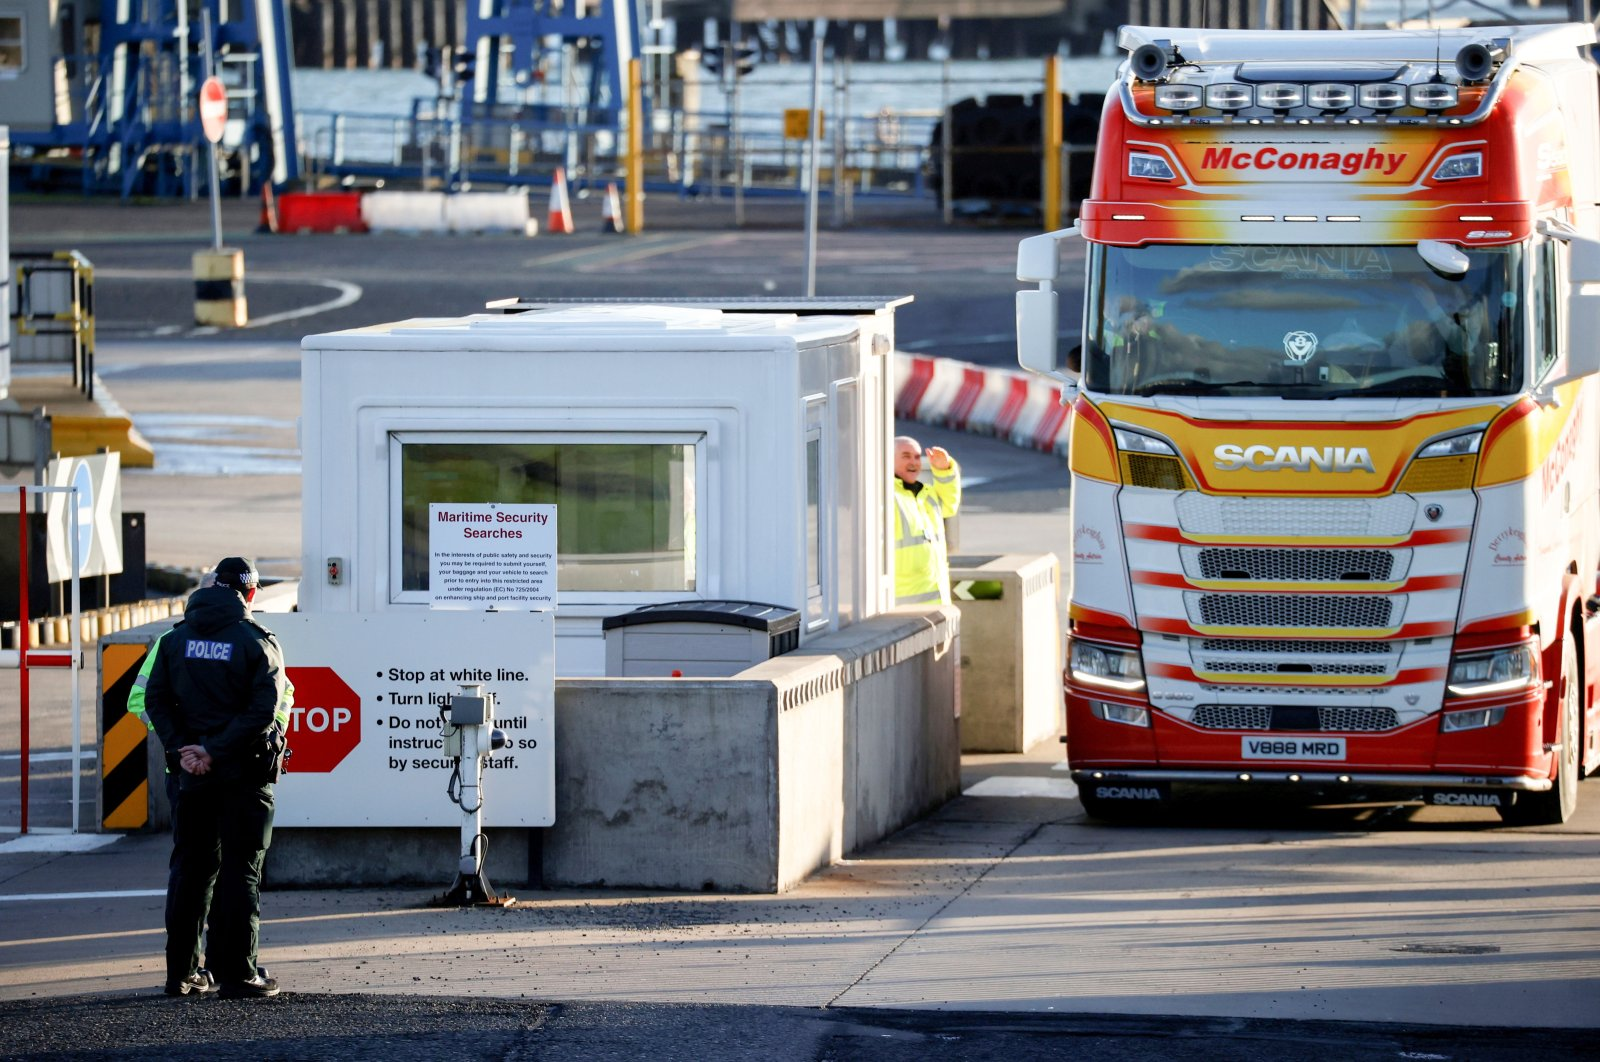 Police officers stand by port security as a lorry drives in at the entrance to the Port of Larne, Northern Ireland, Britain, Jan. 1, 2021. (Reuters Photo)